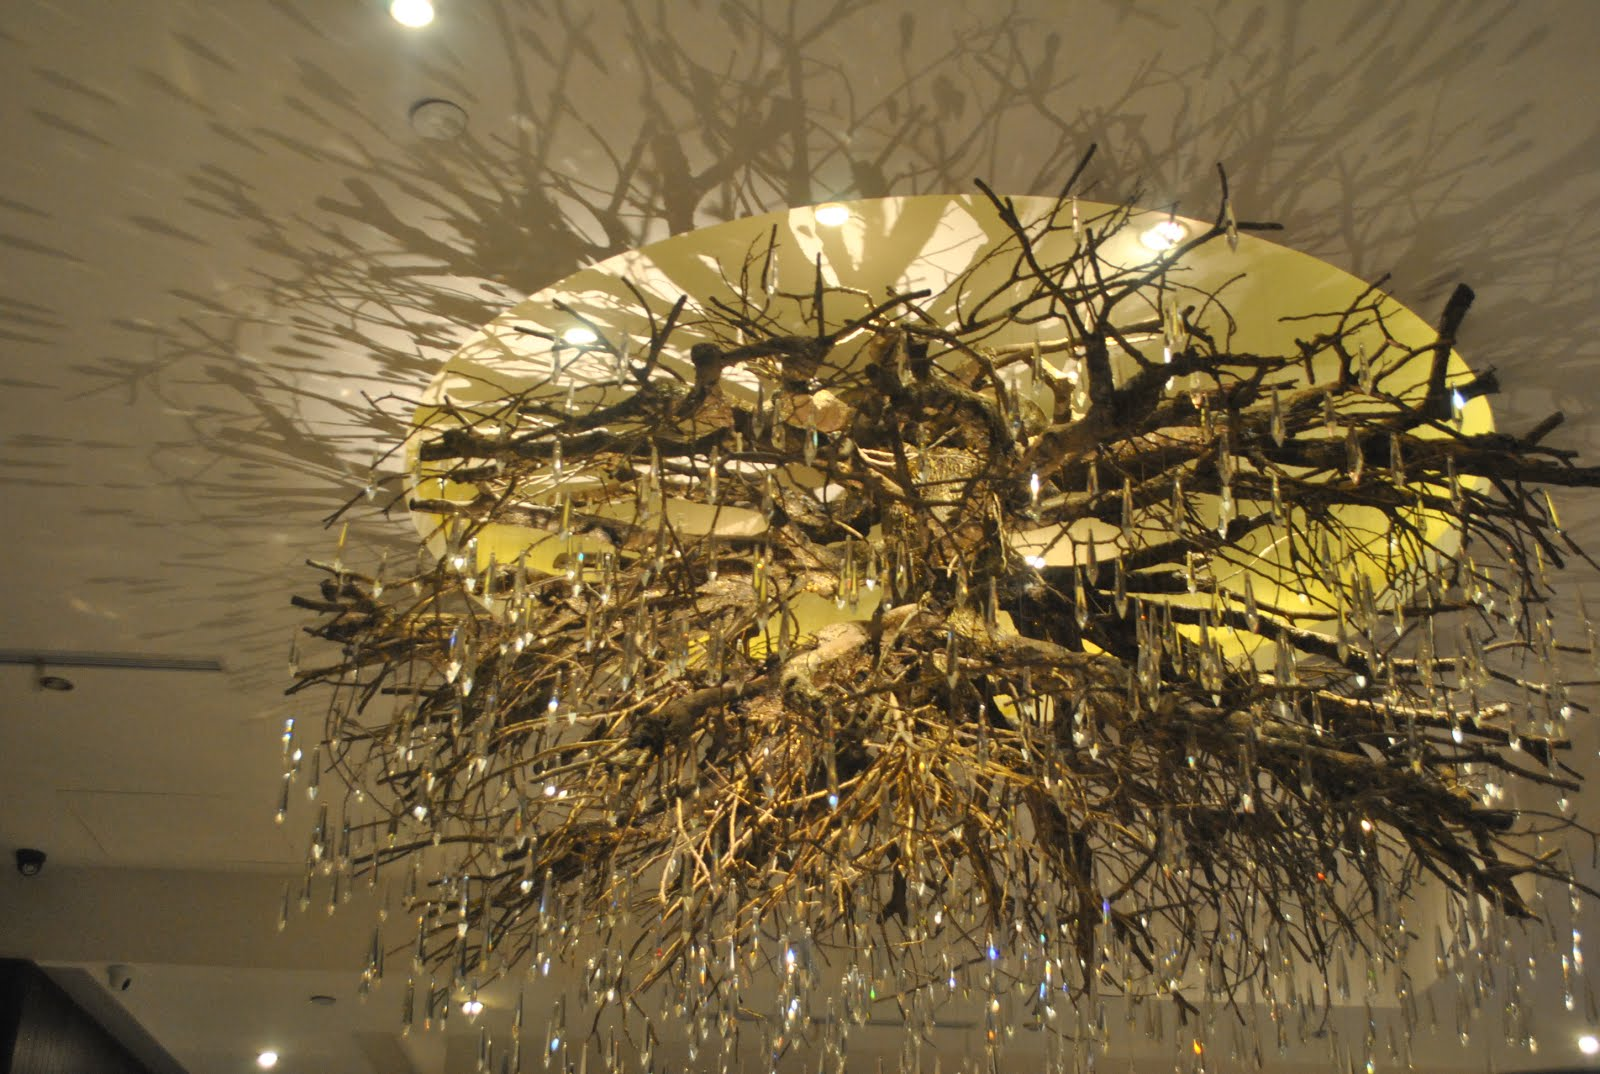 HOG ETC - Plaza Indonesia : Making out with the Steak - Chandelier